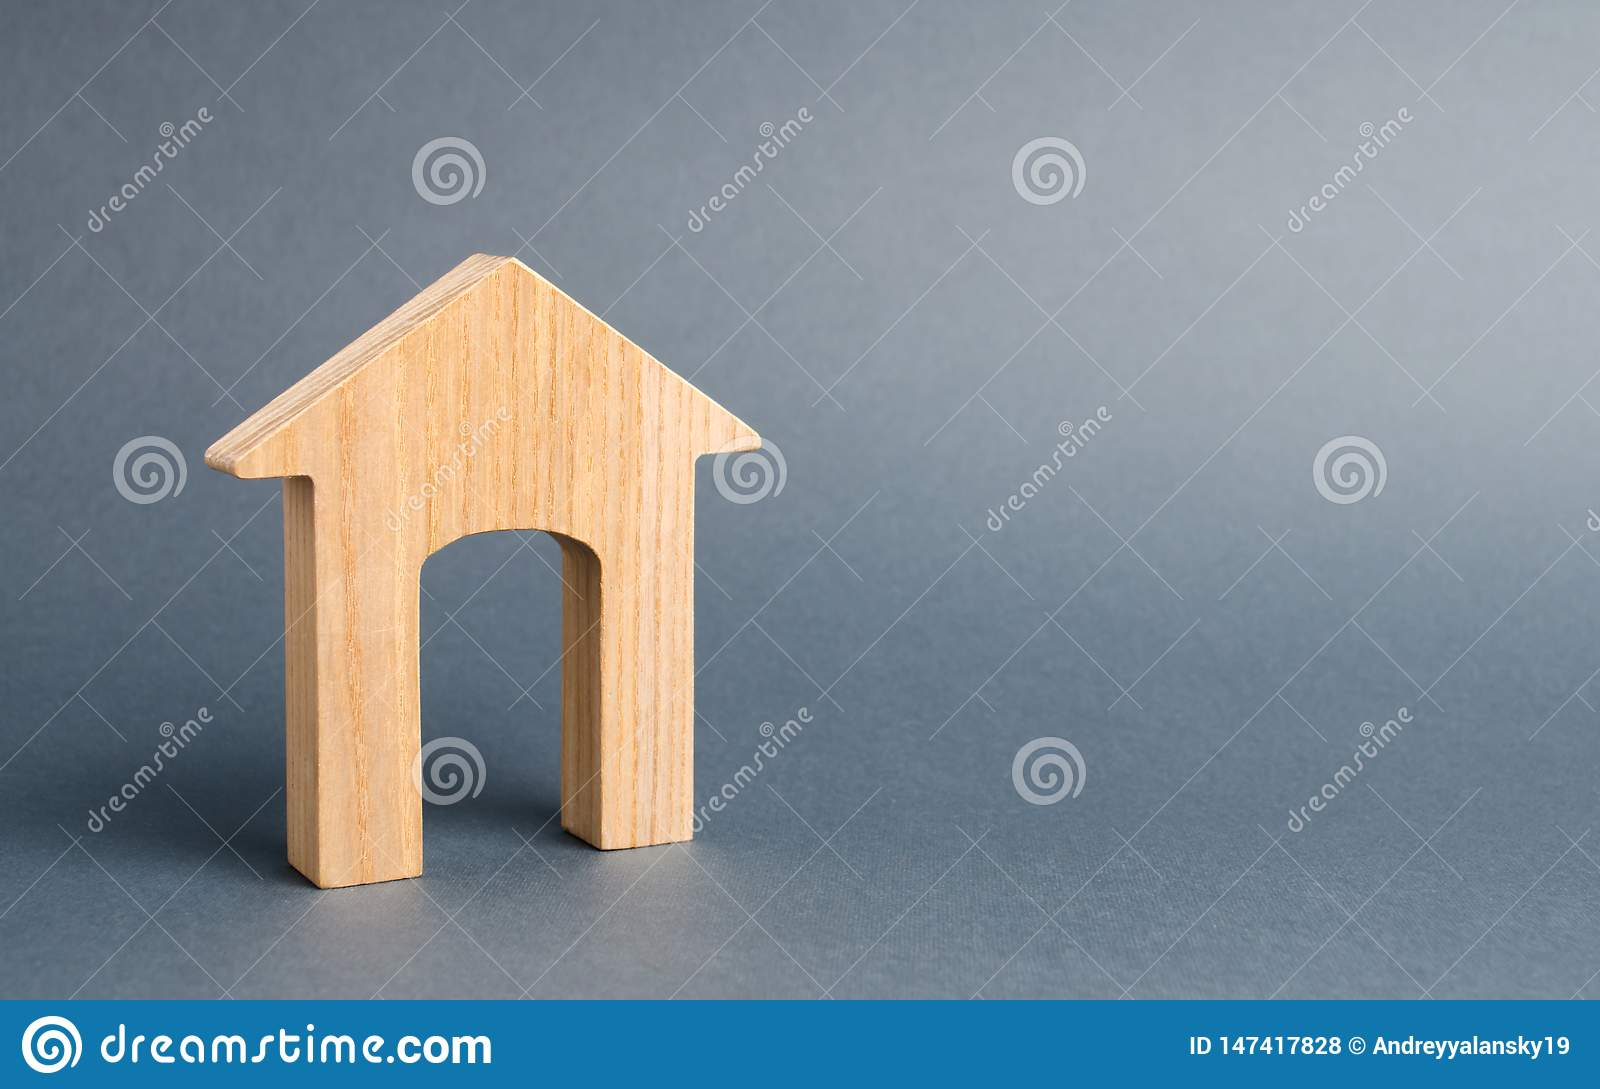 Wooden house with a large doorway on a gray background. Minimalism. Entry, exit, real estate and urbanism. Buying or selling